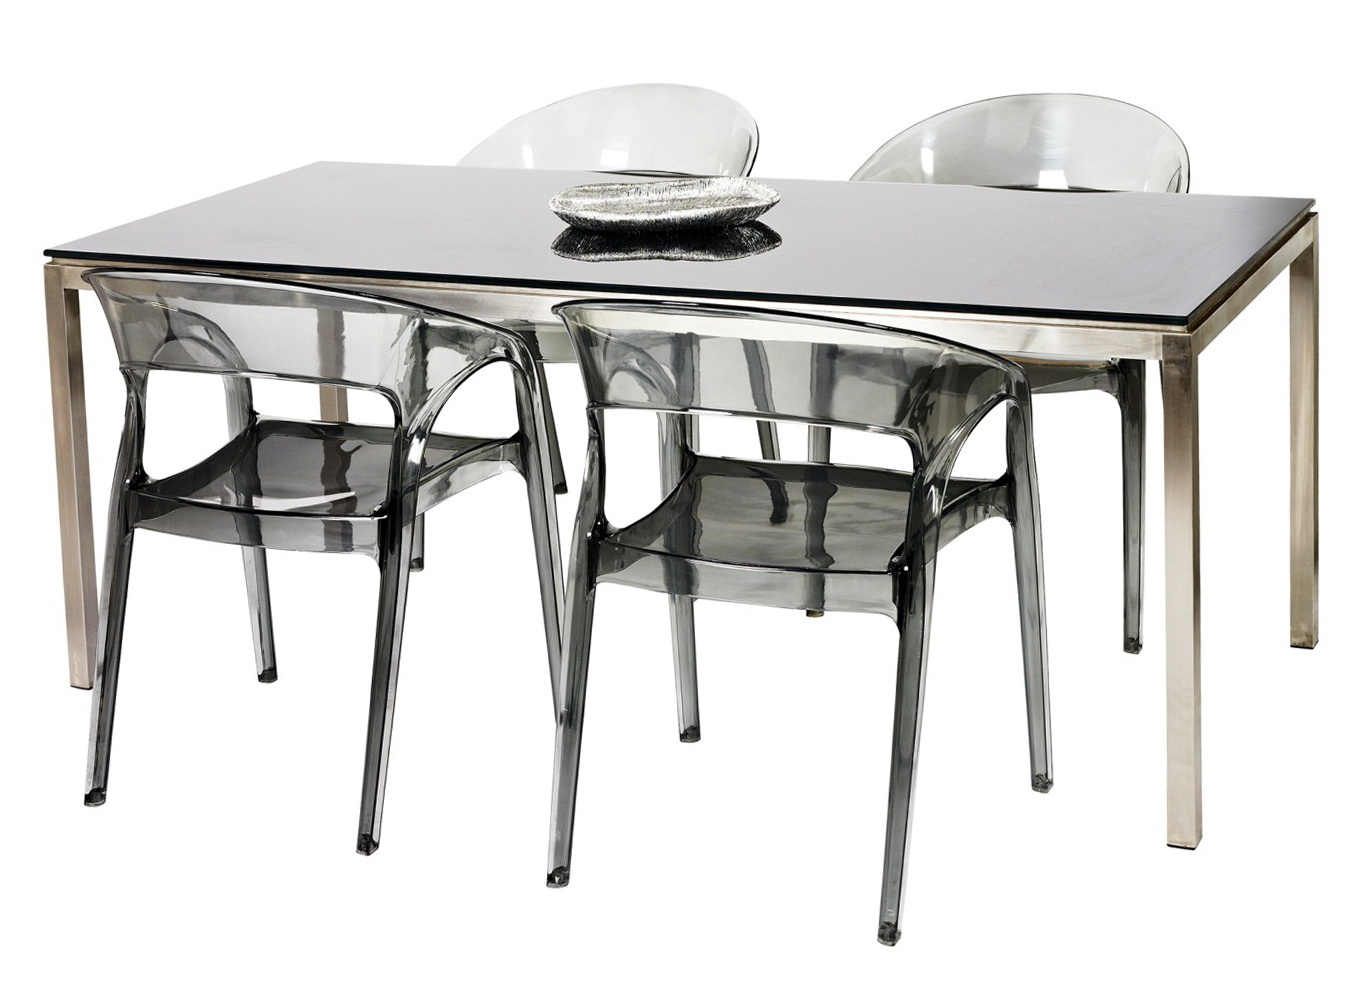 Mirrored Dining Table And Chairs